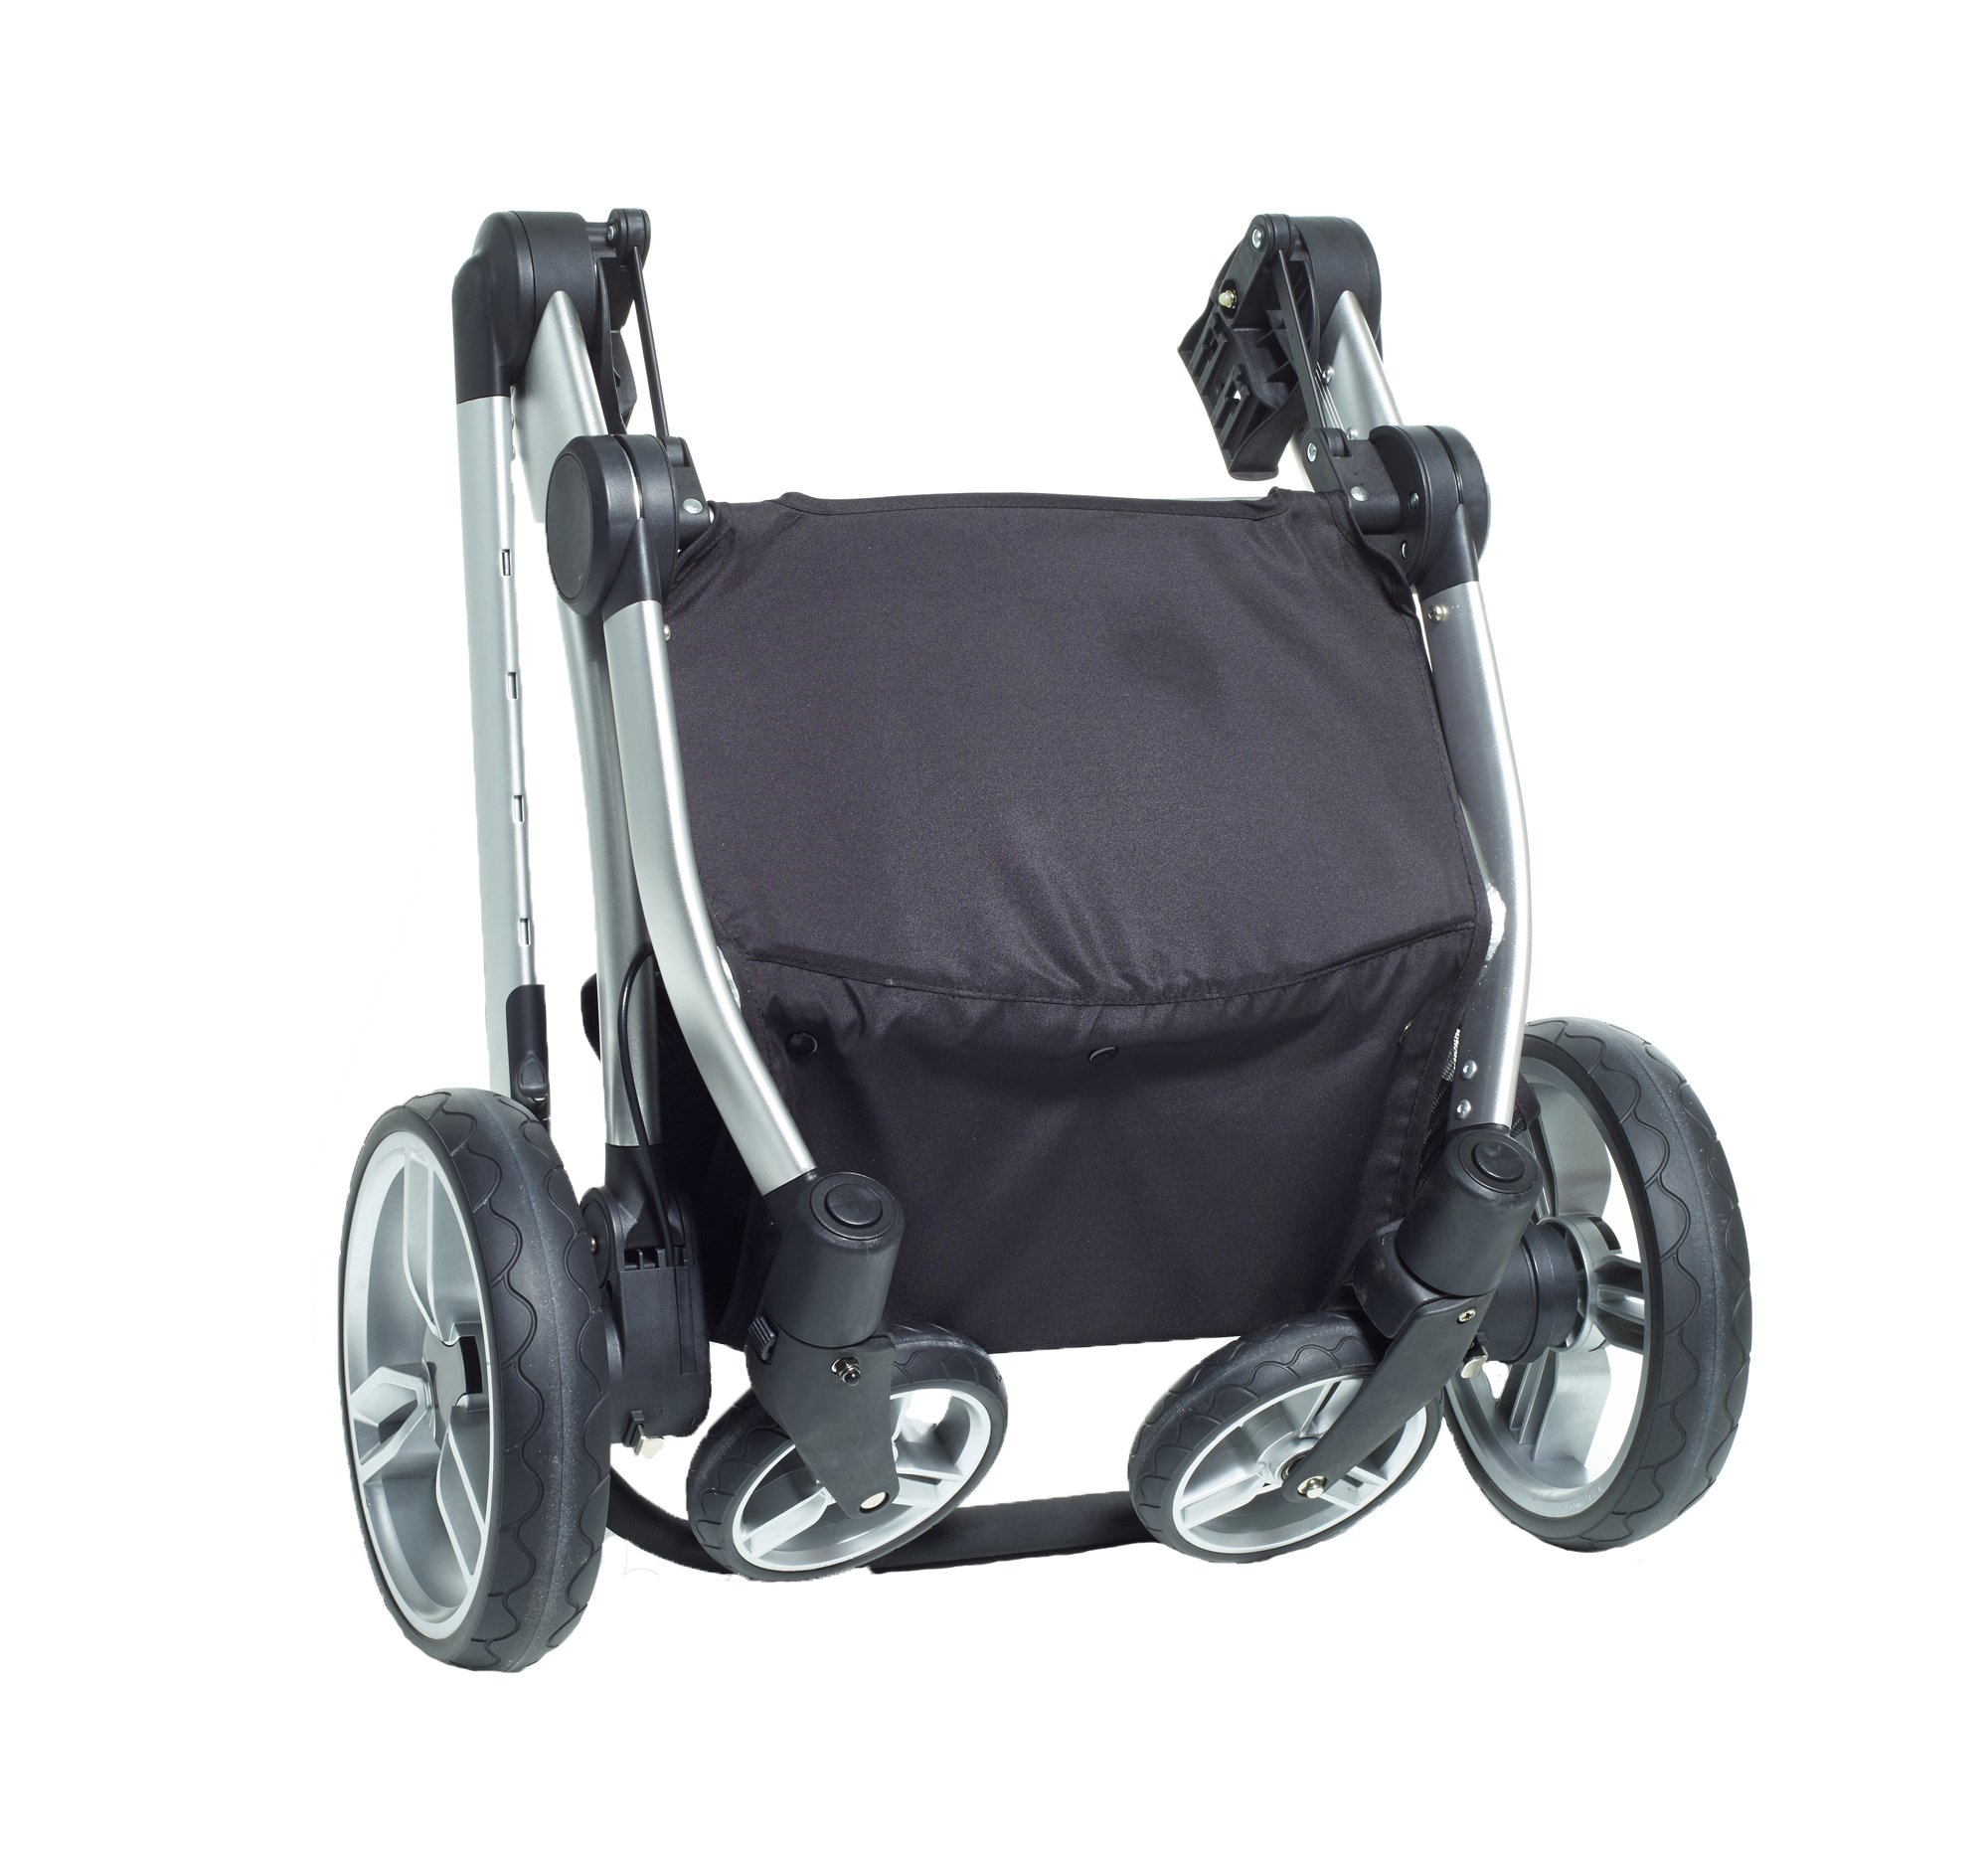 Kids Kargo Duellette 21 Bs Twin Double Pushchair Stroller Buggy with Tan Handle Pack (Oxford Stripe) Kids Kargo Fully safety tested Various seat positions. Both seats can face mum (ideal for twins) Suitability Newborn Twins (if used with car seats) or Newborn/toddler. Accommodates 1 or 2 car seats 5